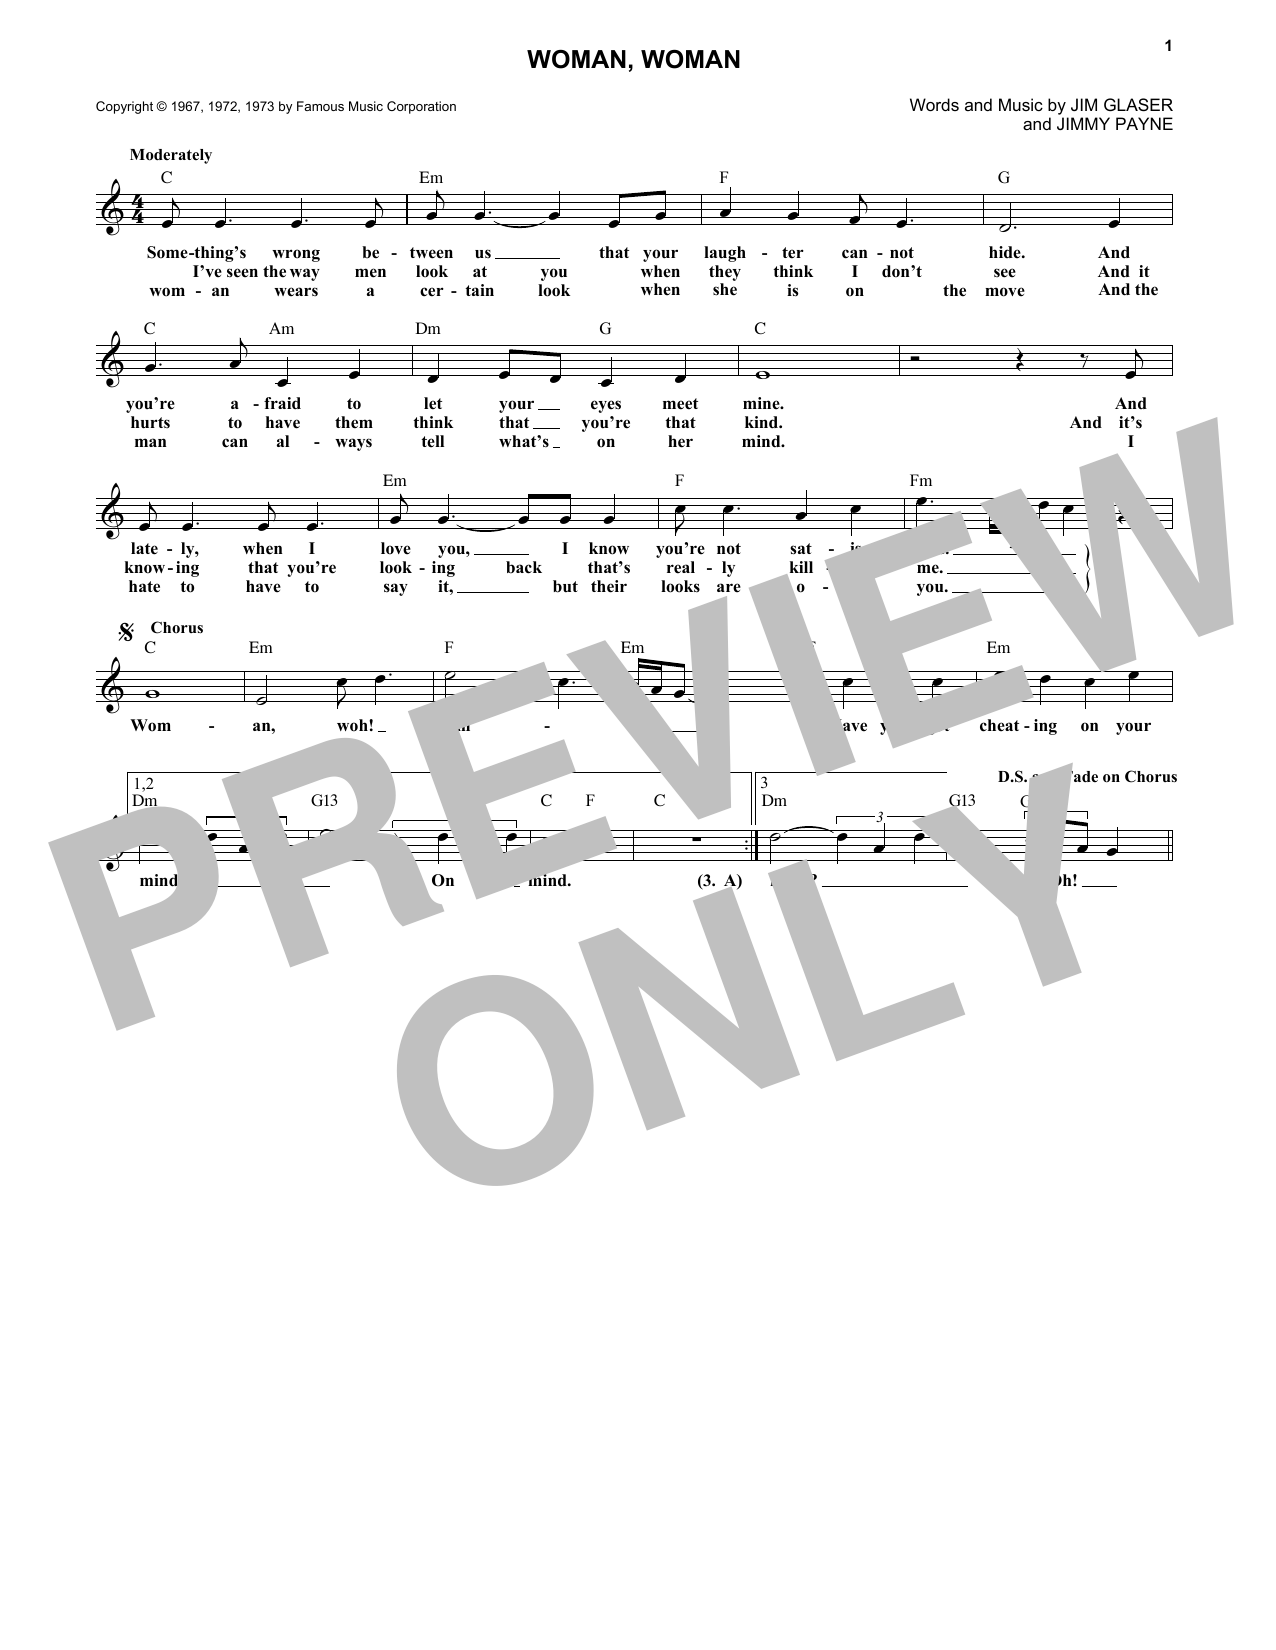 Gary Puckett & The Union Gap Woman, Woman sheet music notes and chords. Download Printable PDF.